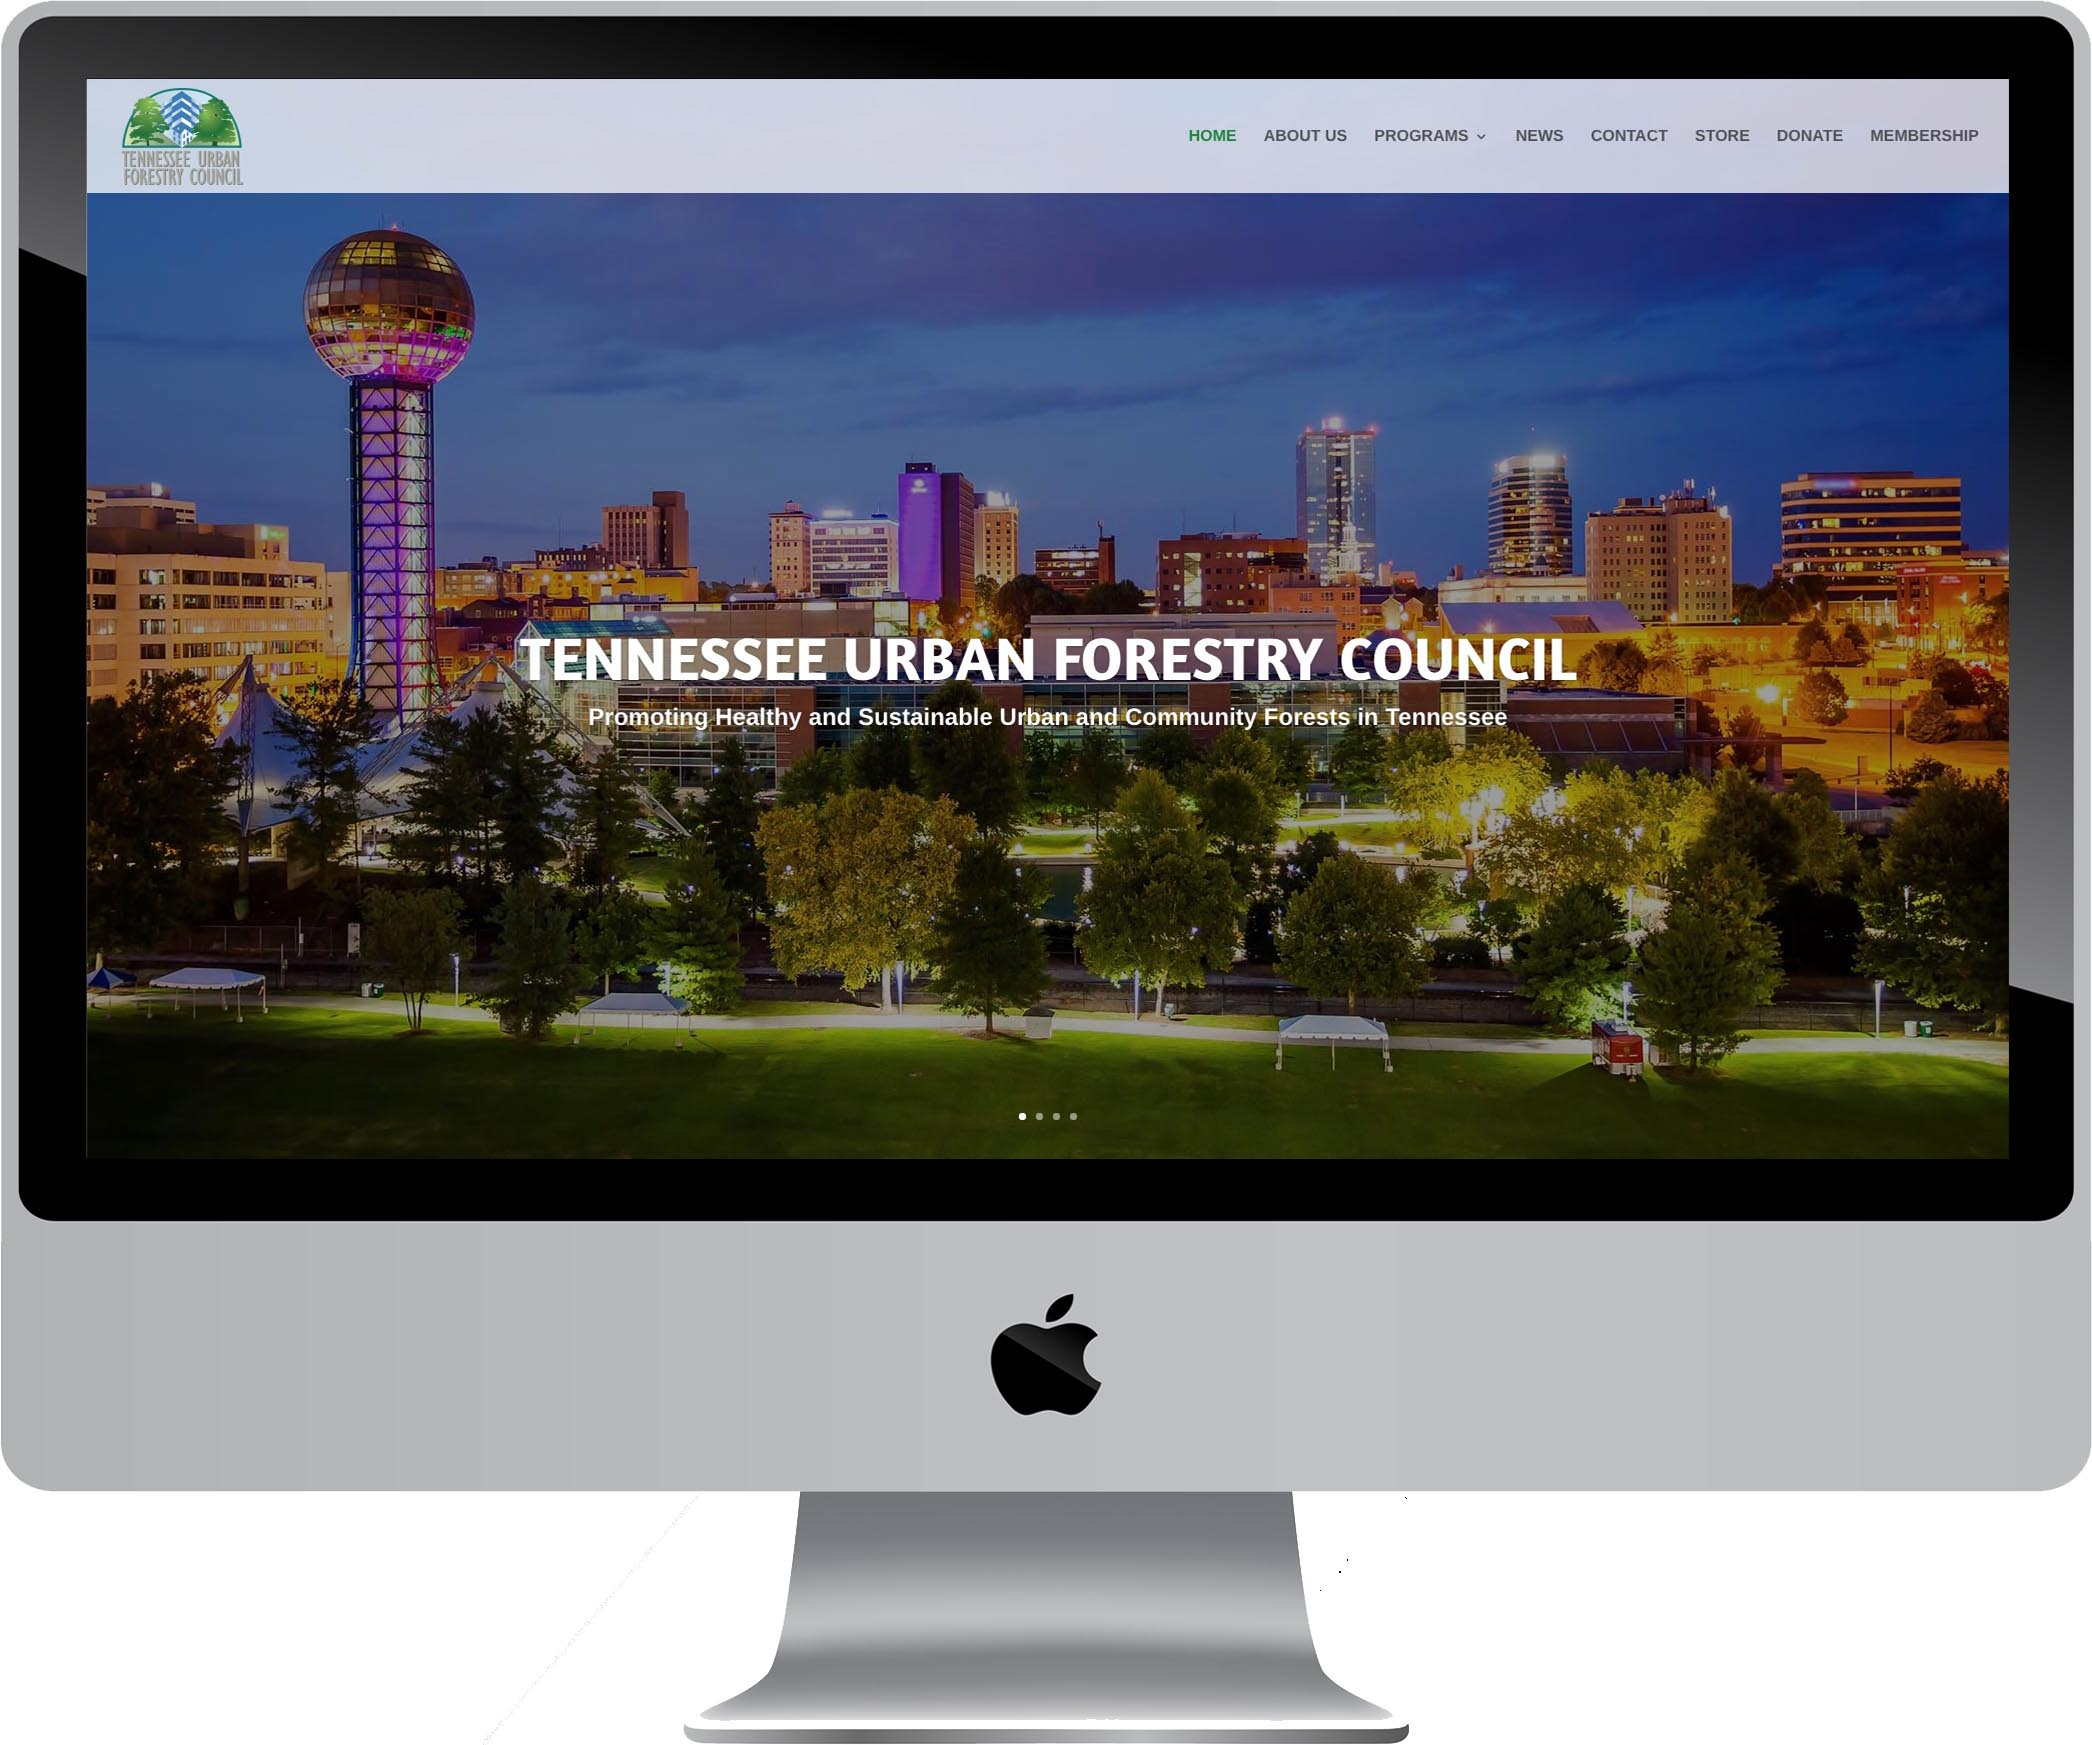 Tennessee Urban Forestry Council Website Design